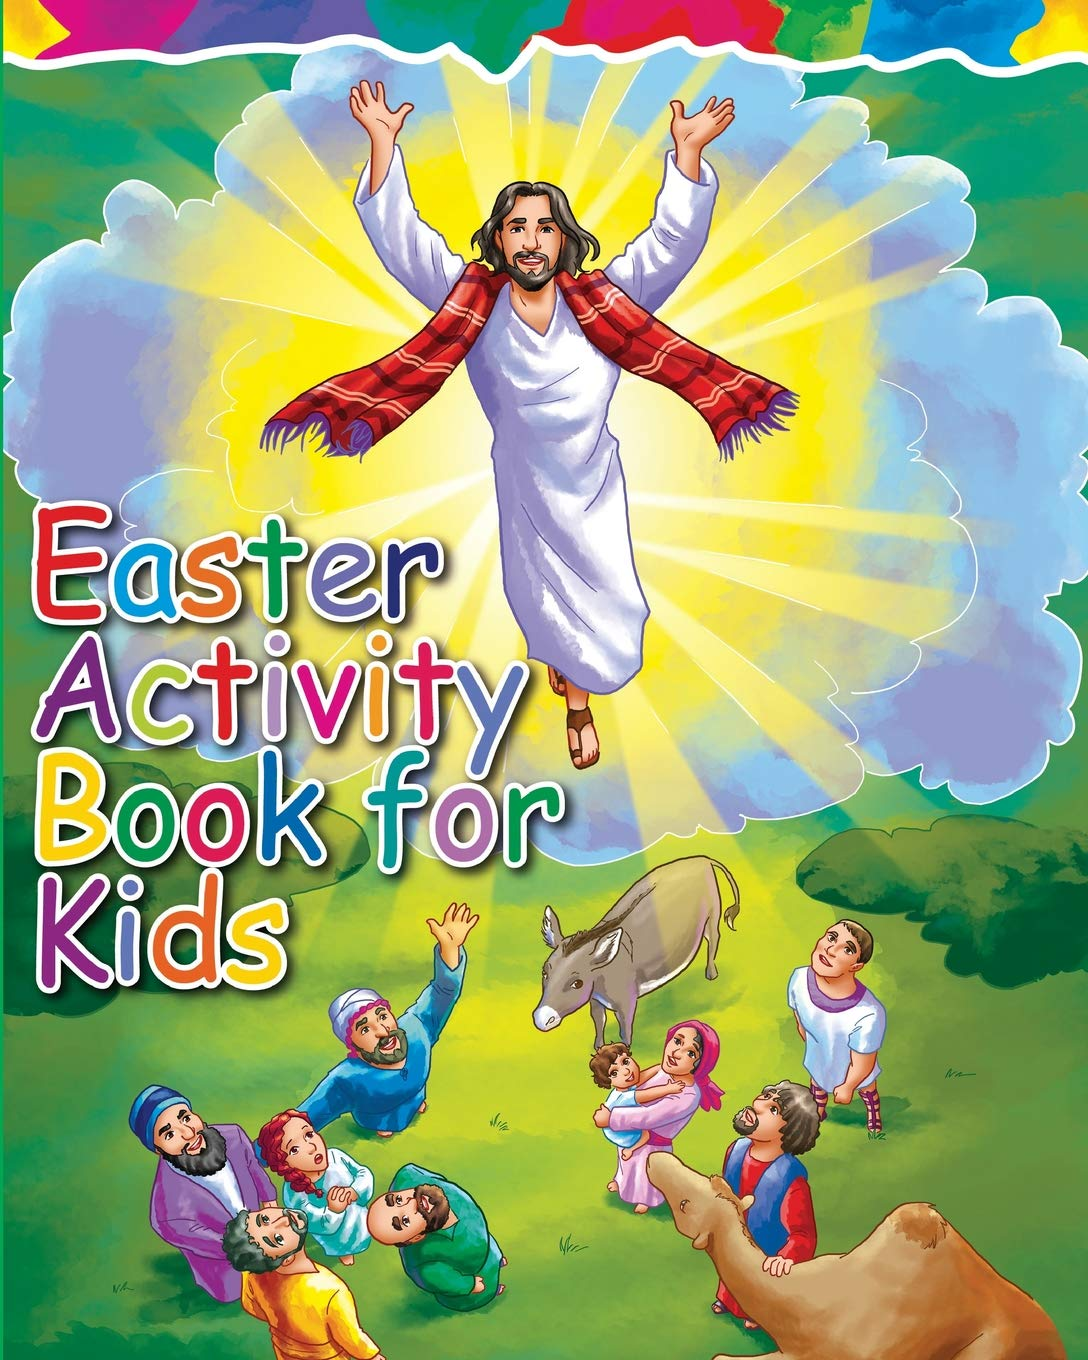 Amazon.com: Easter Activity Book for Kids: The Story of ...